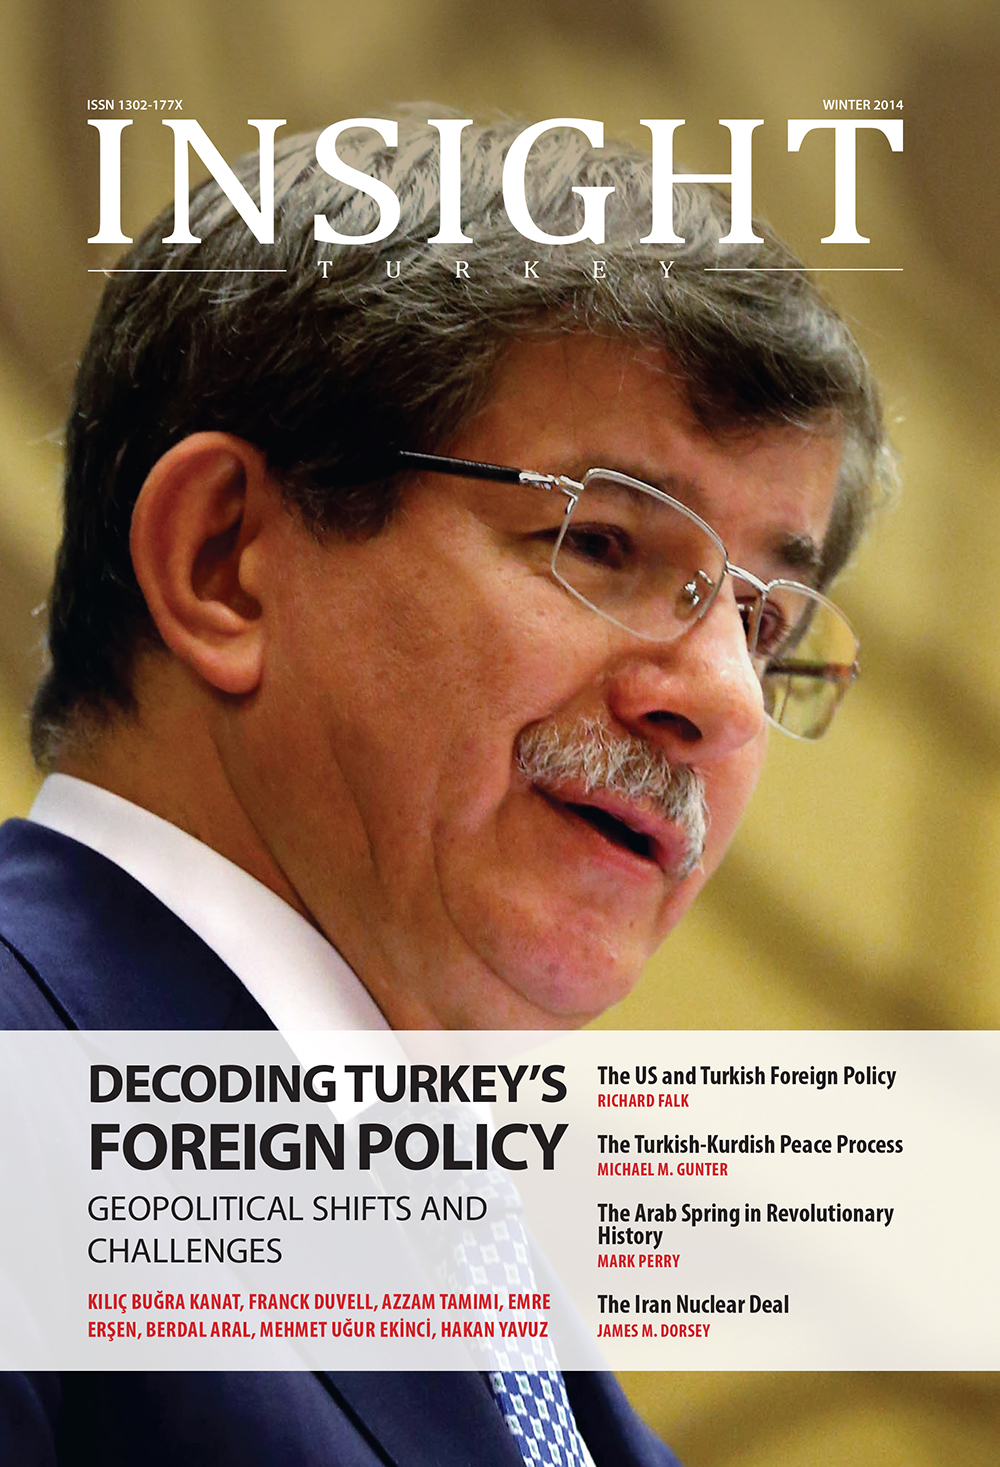 Decoding Turkey's Foreign Policy